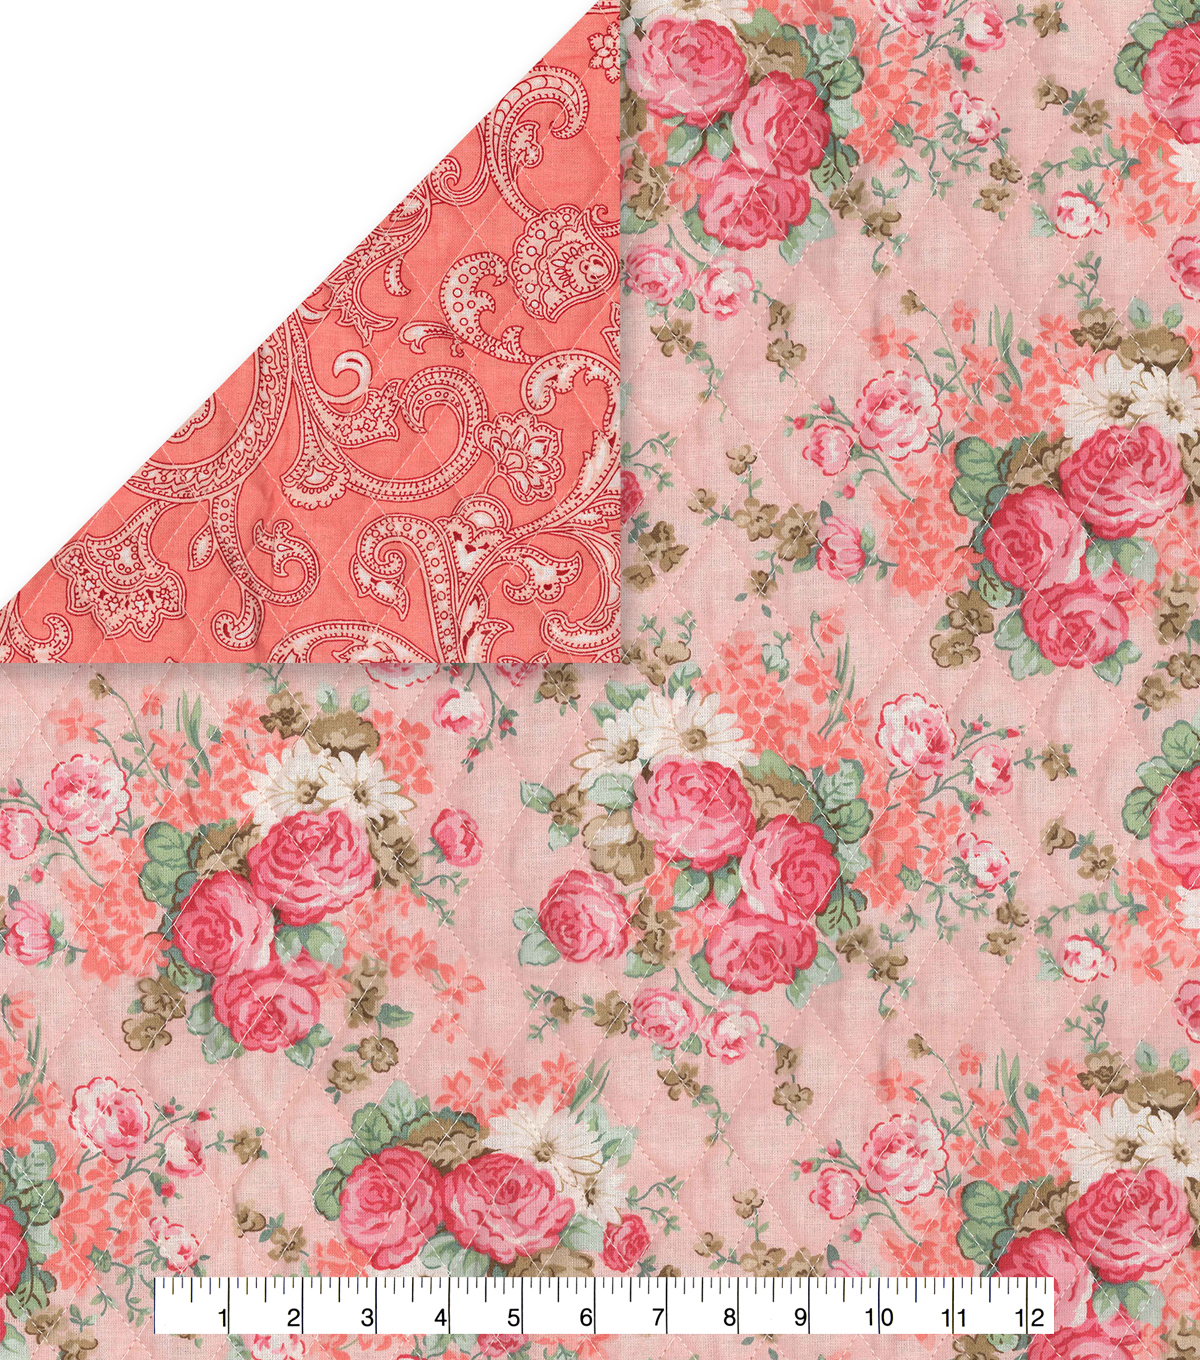 Quilted Fabric Double Faced Pre Quilted Cotton Fabric Vintage Floral